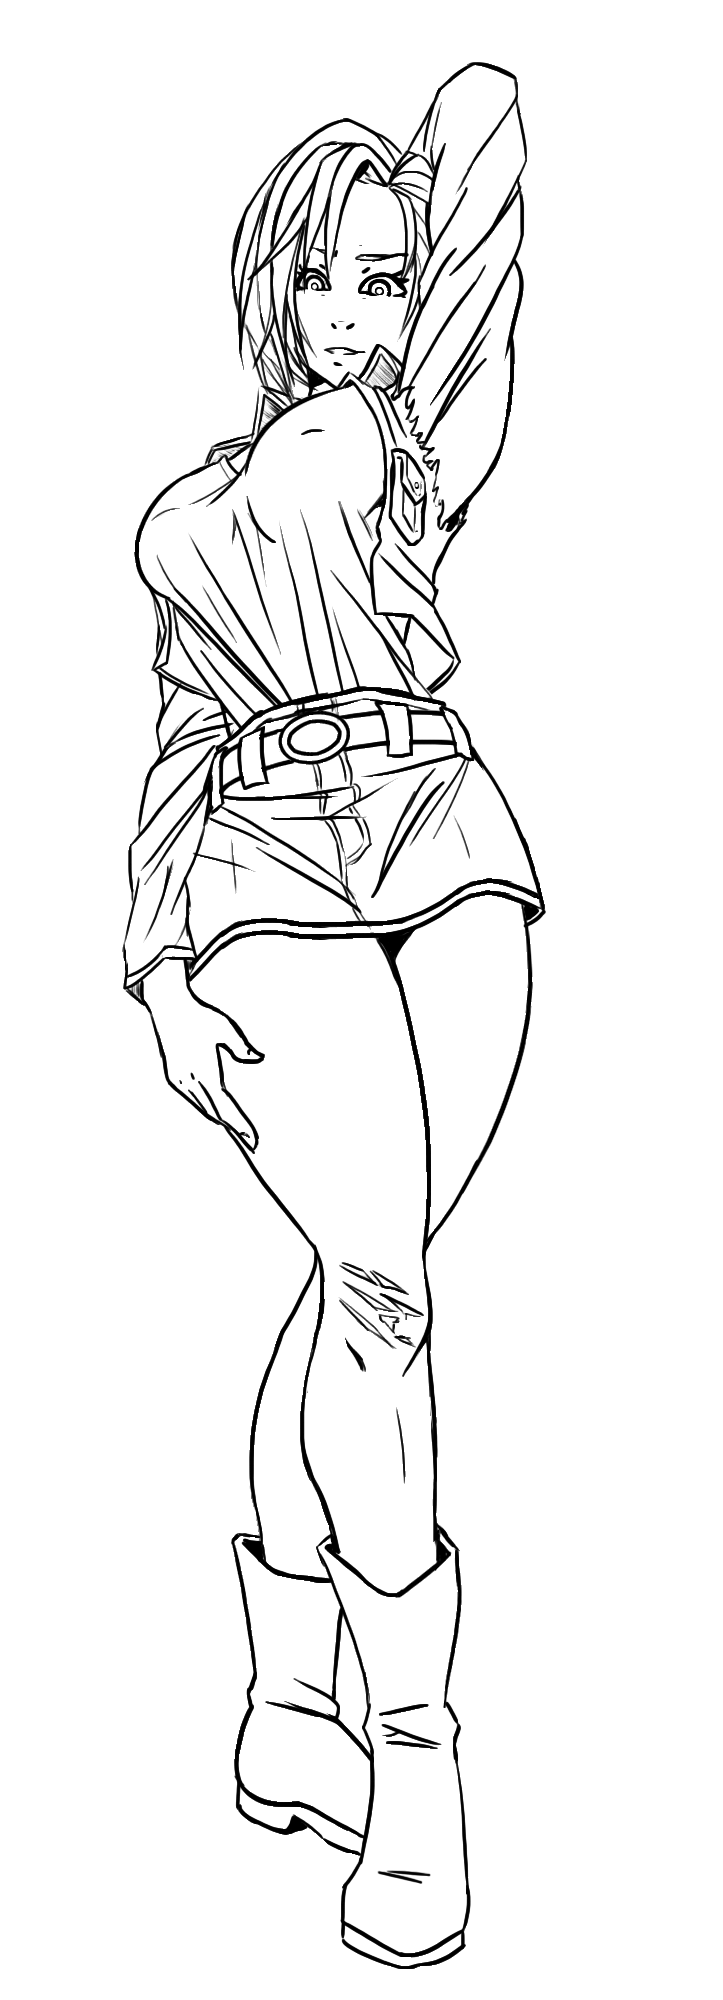 Android 18 line art